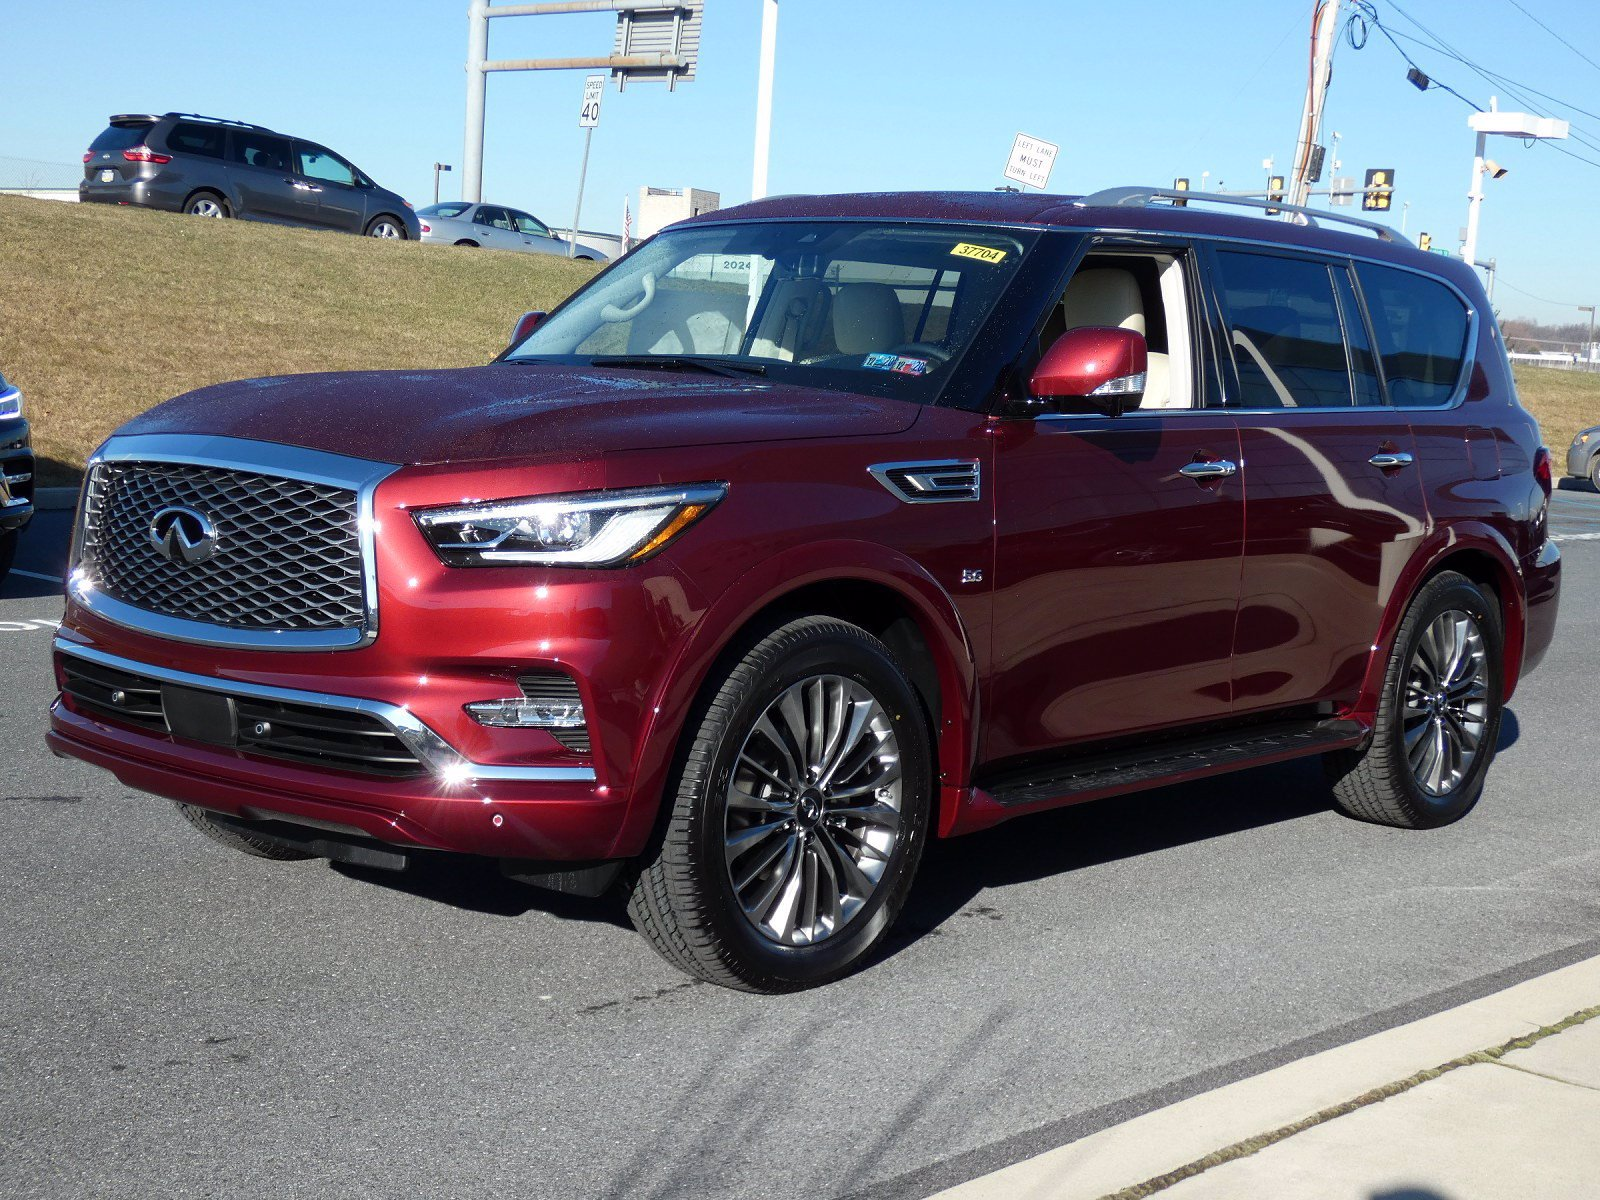 new 2020 infiniti qx80 luxe 4wd suv in allentown #37704